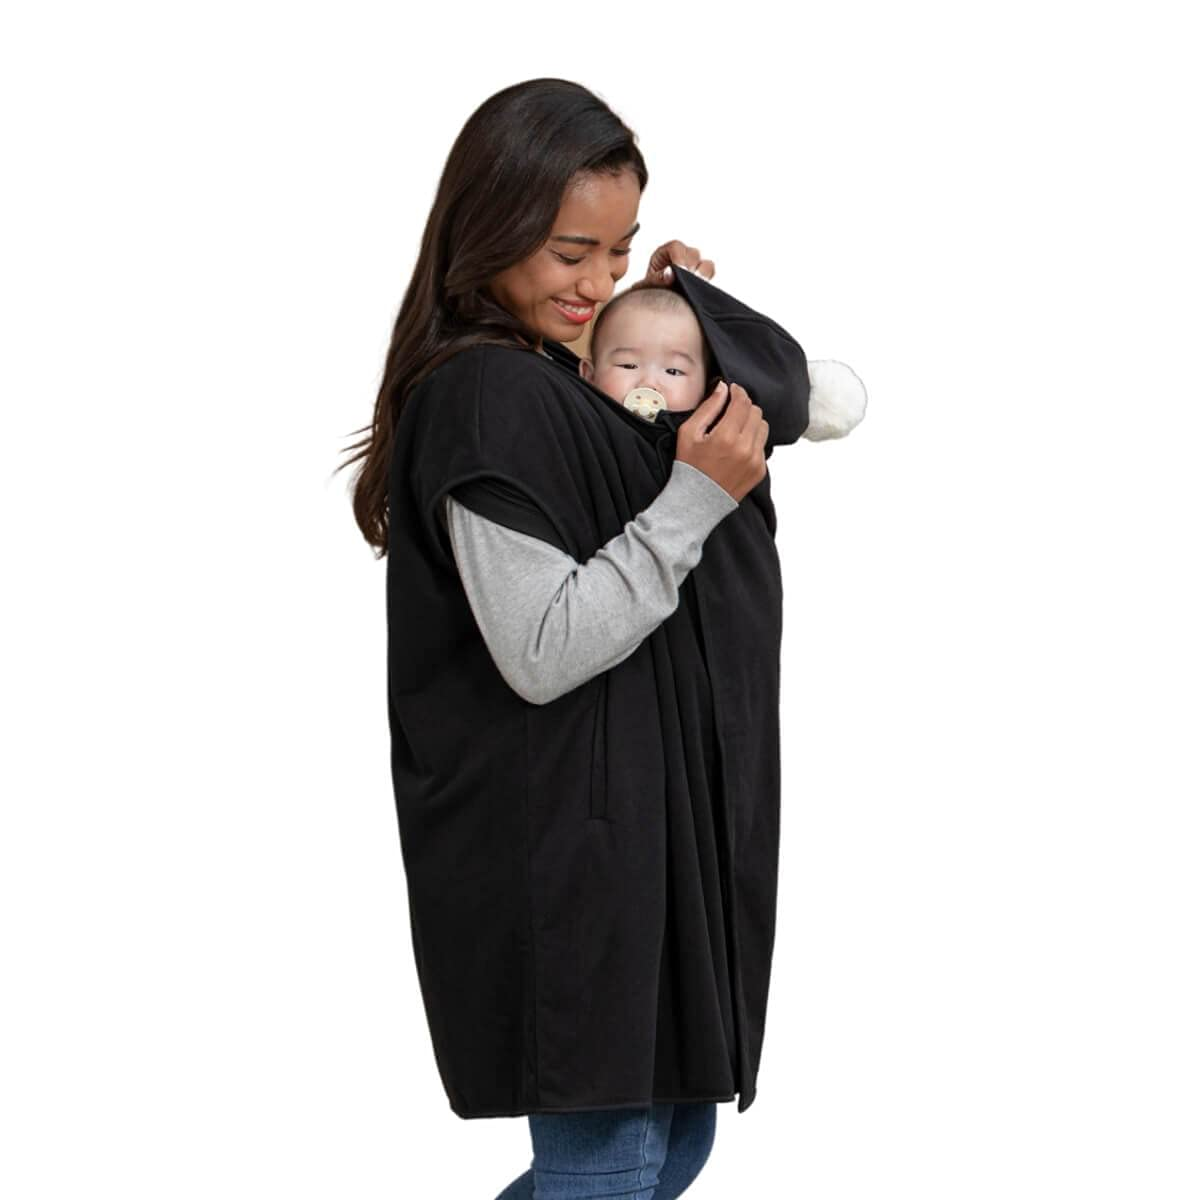 Konny Baby Carrier Winter Cover | Compatible with Any Baby Carrier and Stroller | Protect Baby from Cold Weather | Polar Fleece | Newborns, Infants to Toddlers (Black, Free)